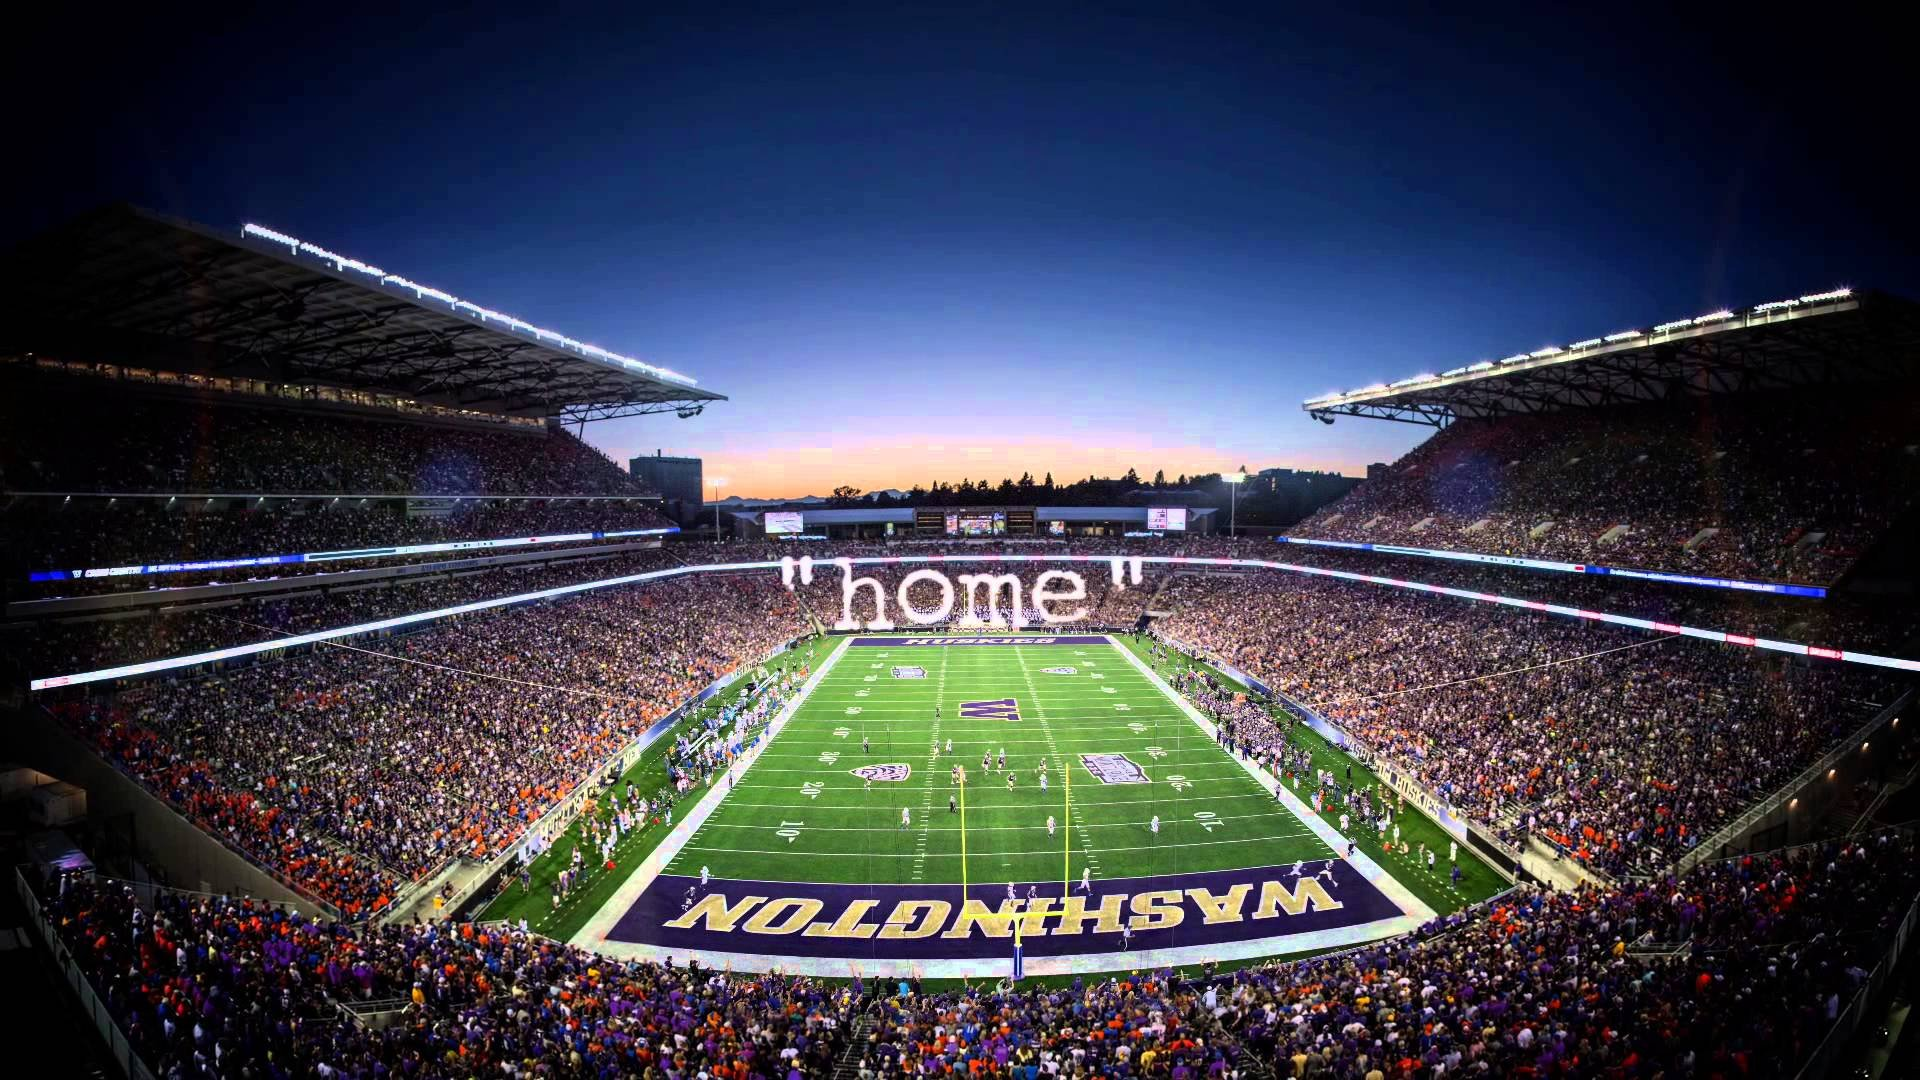 WASHINGTON HUSKIES college football wallpaper background 1920x1080